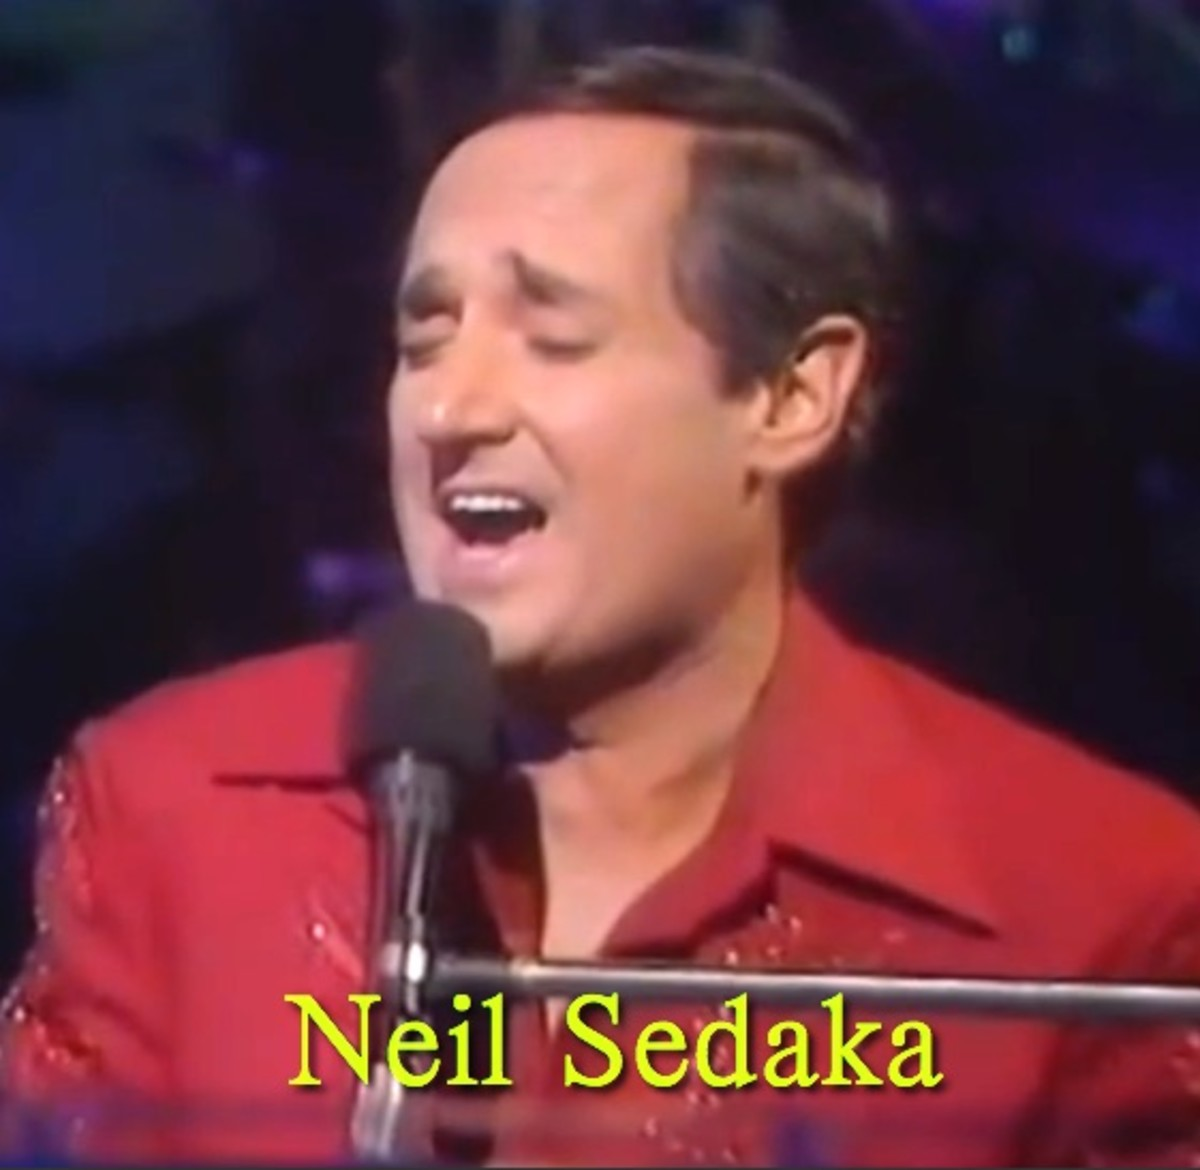 Neil Sedaka: His Serenade to Carole King and Her Reply